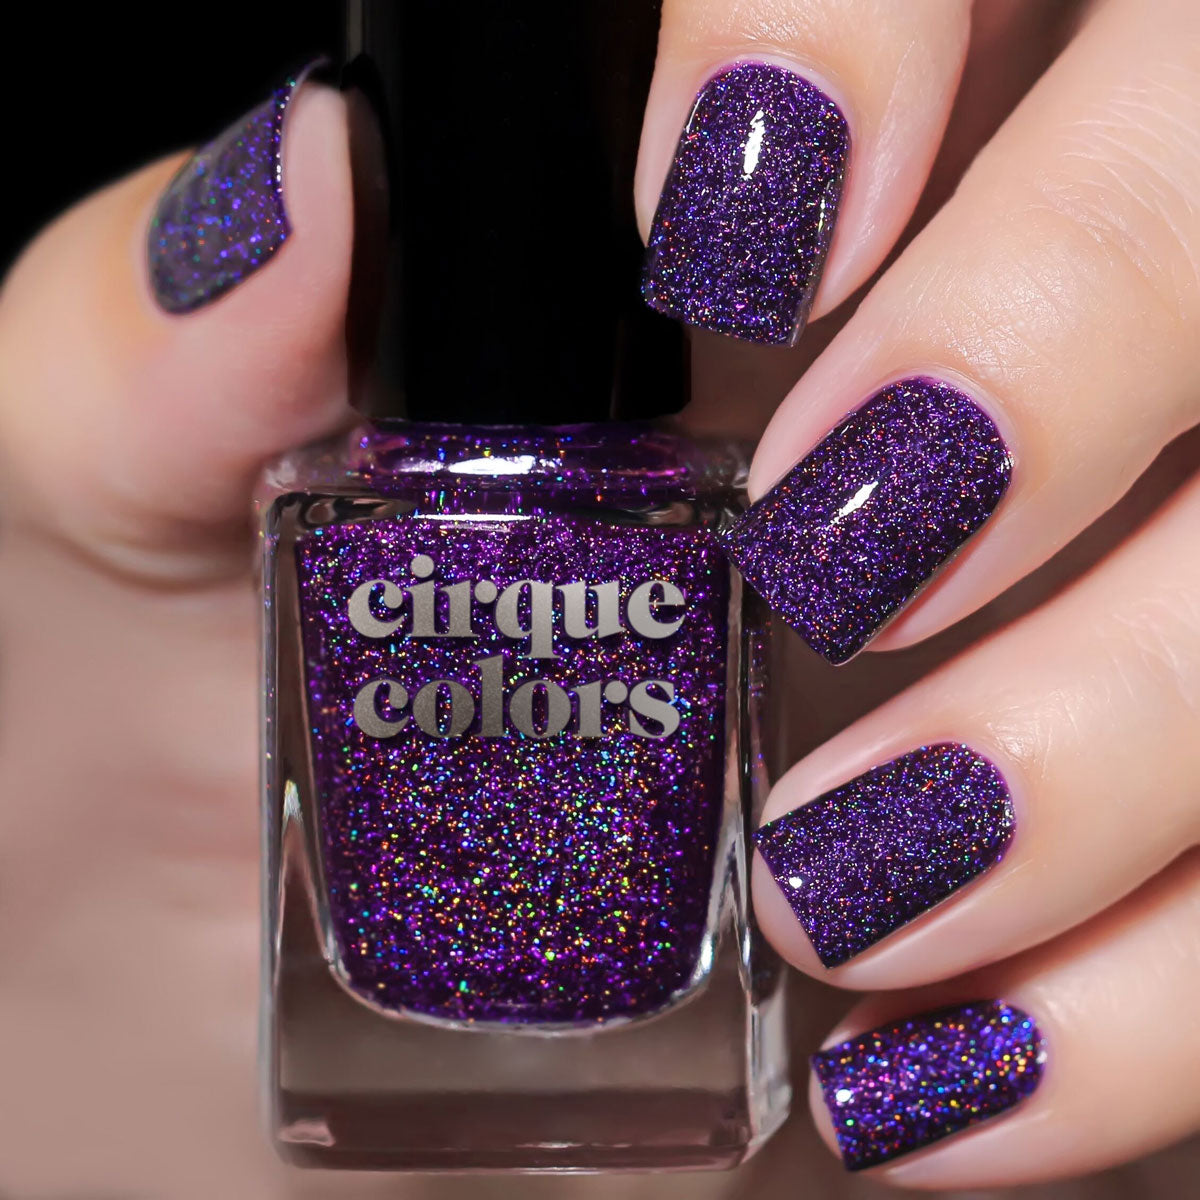 *PRE-SALE* Cirque Colors - Amethyst